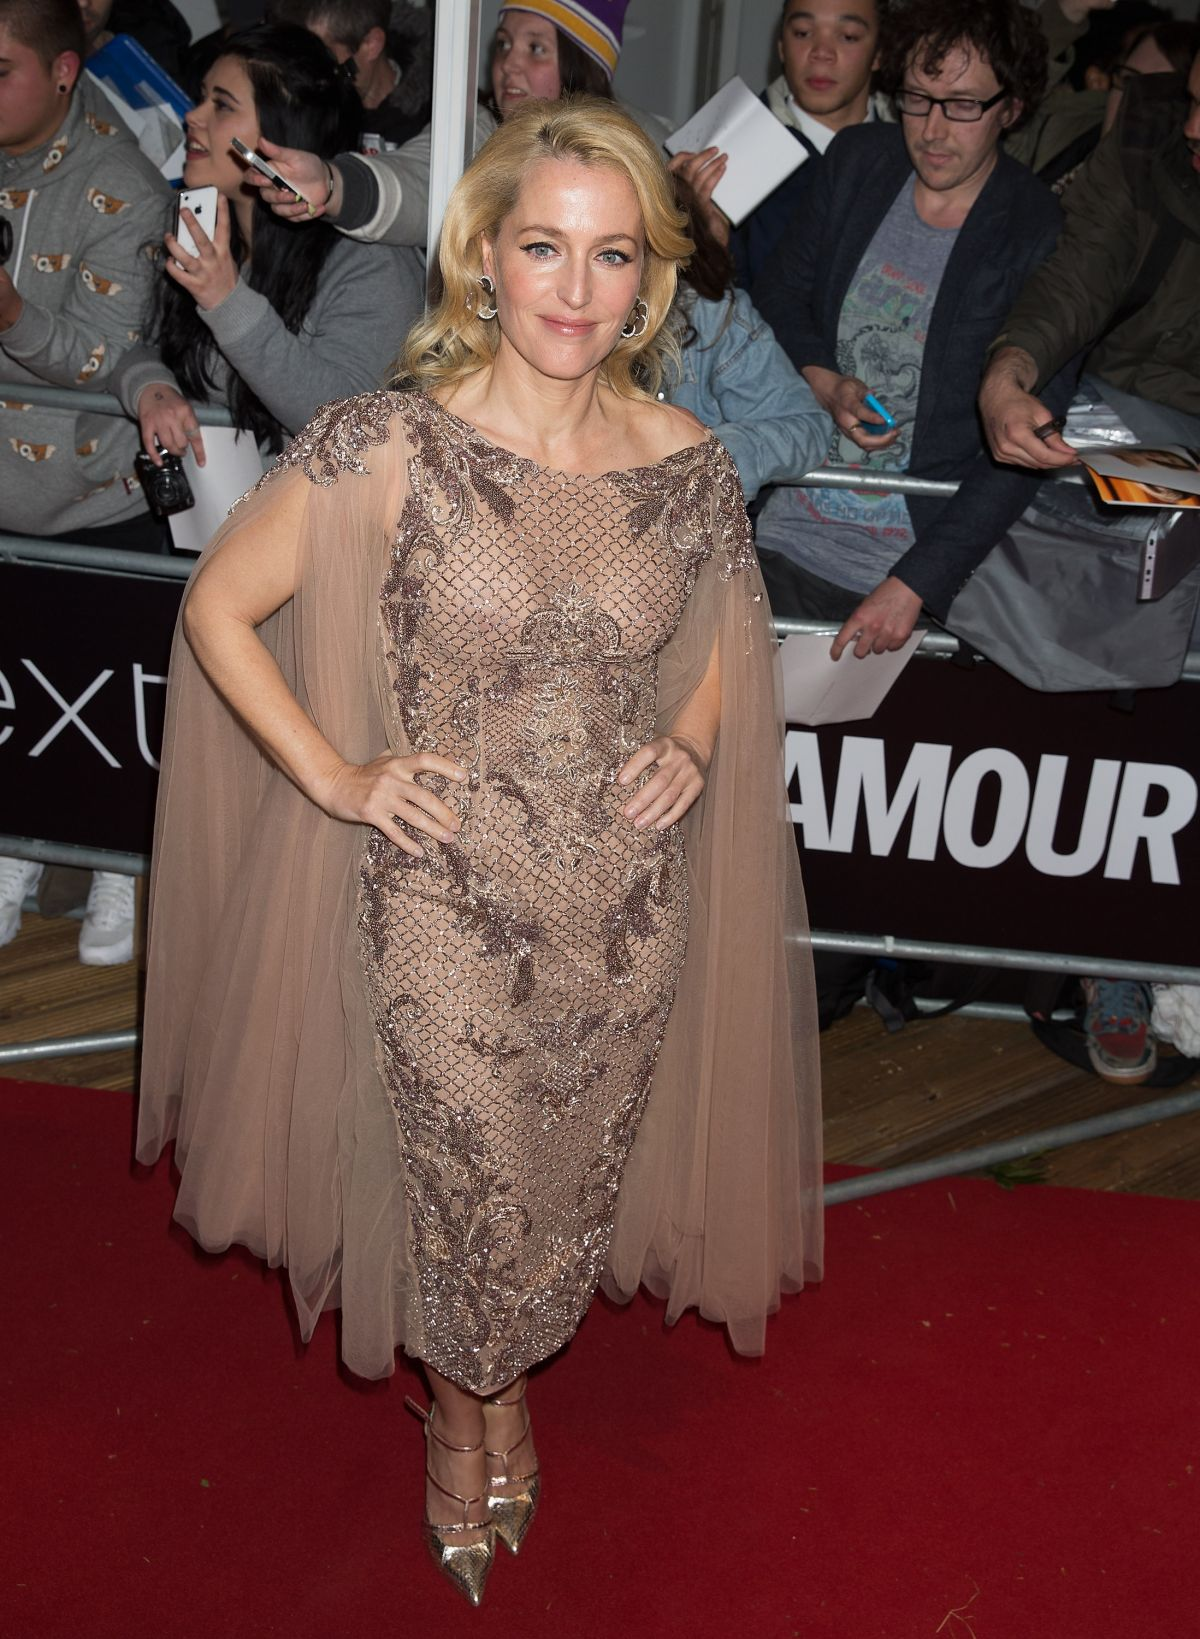 GILLIAN ANDERSON at Glamour Women of the Year Awards in